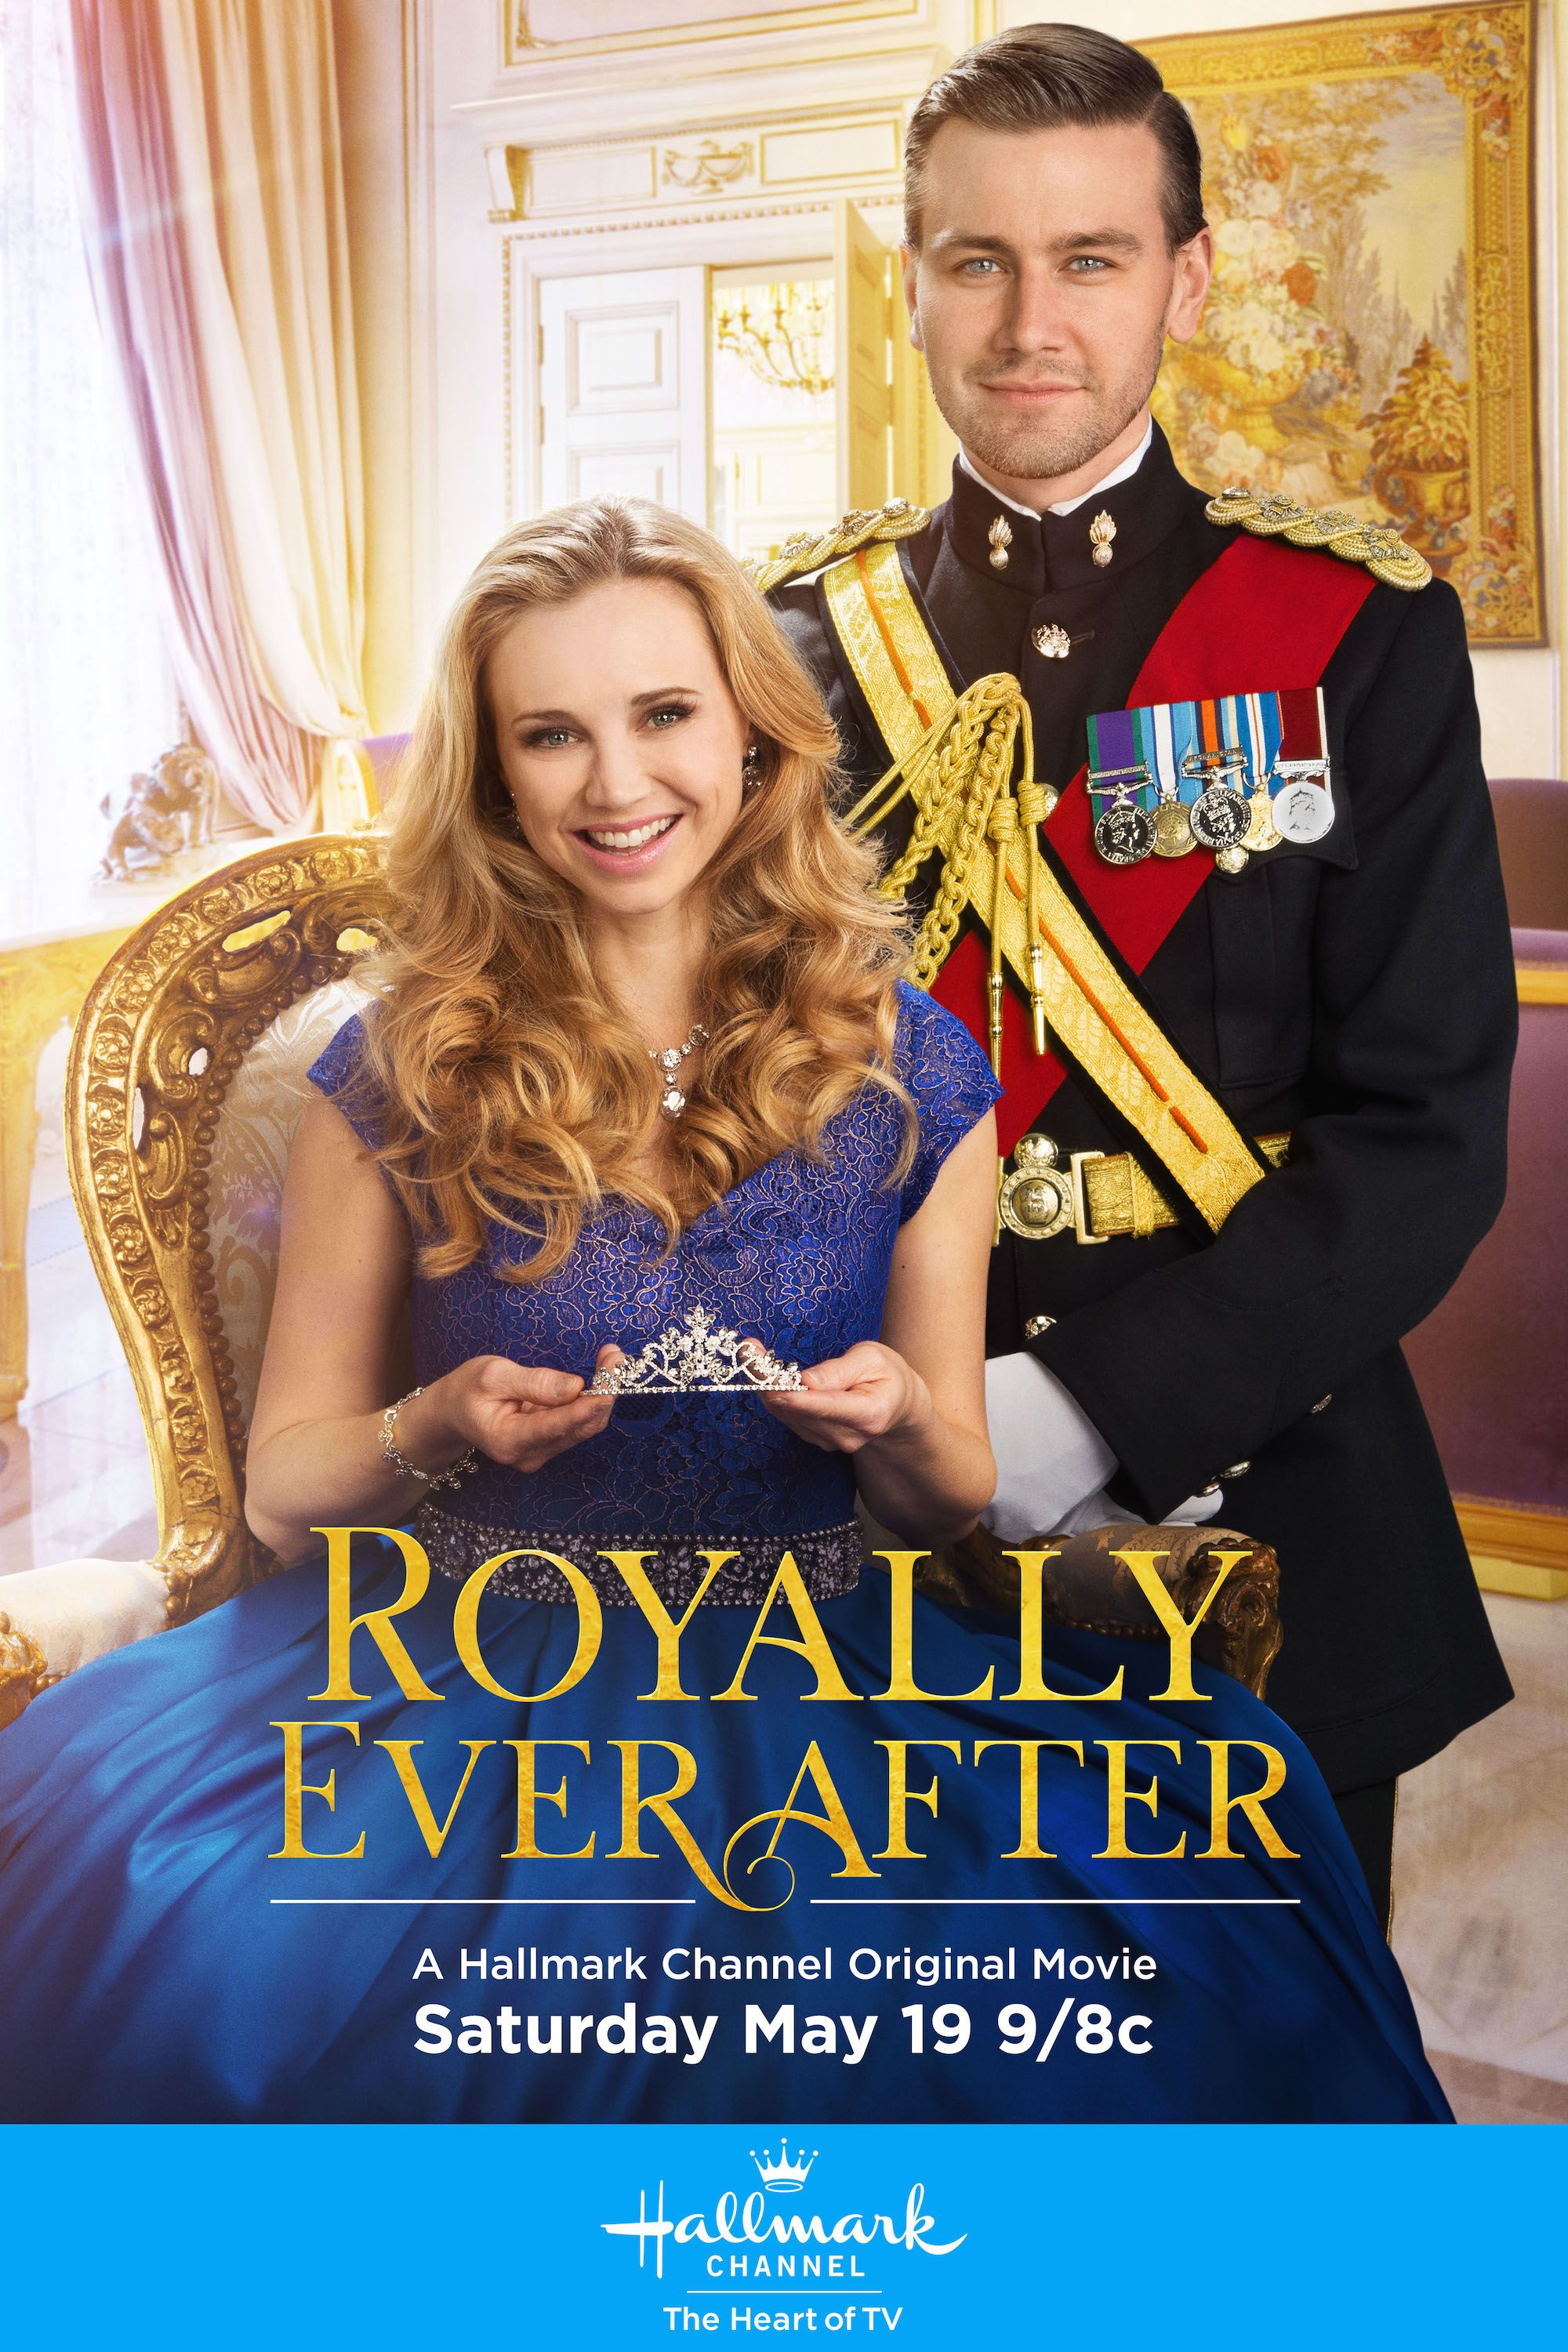 Royally Ever After Fiona Gubelman And Torrance Coombs Star In An All New Royal Romance Sho Hallmark Movies Romance Hallmark Movies Hallmark Christmas Movies